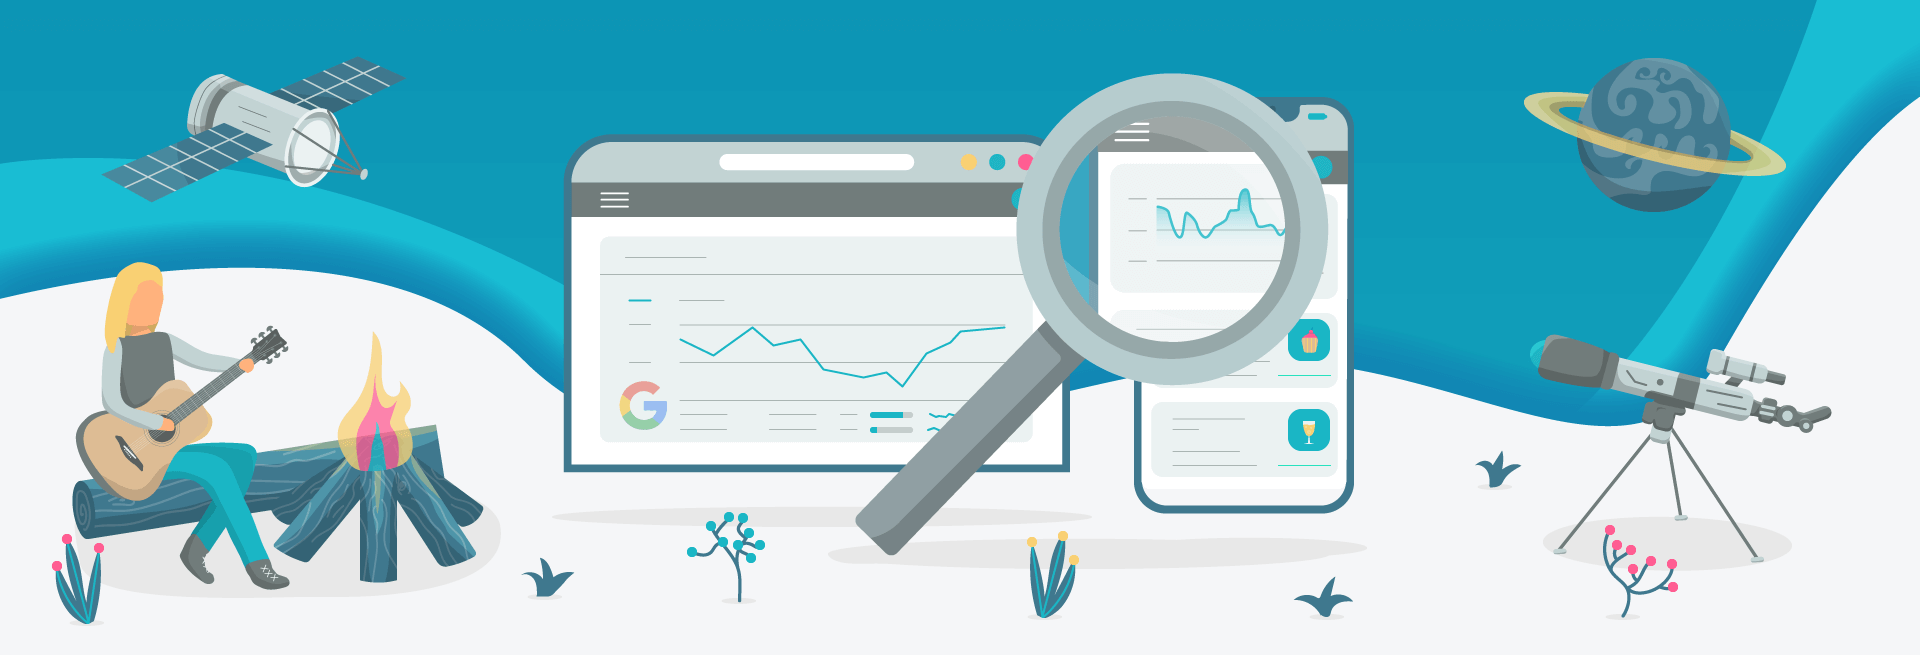 google search console insights explained